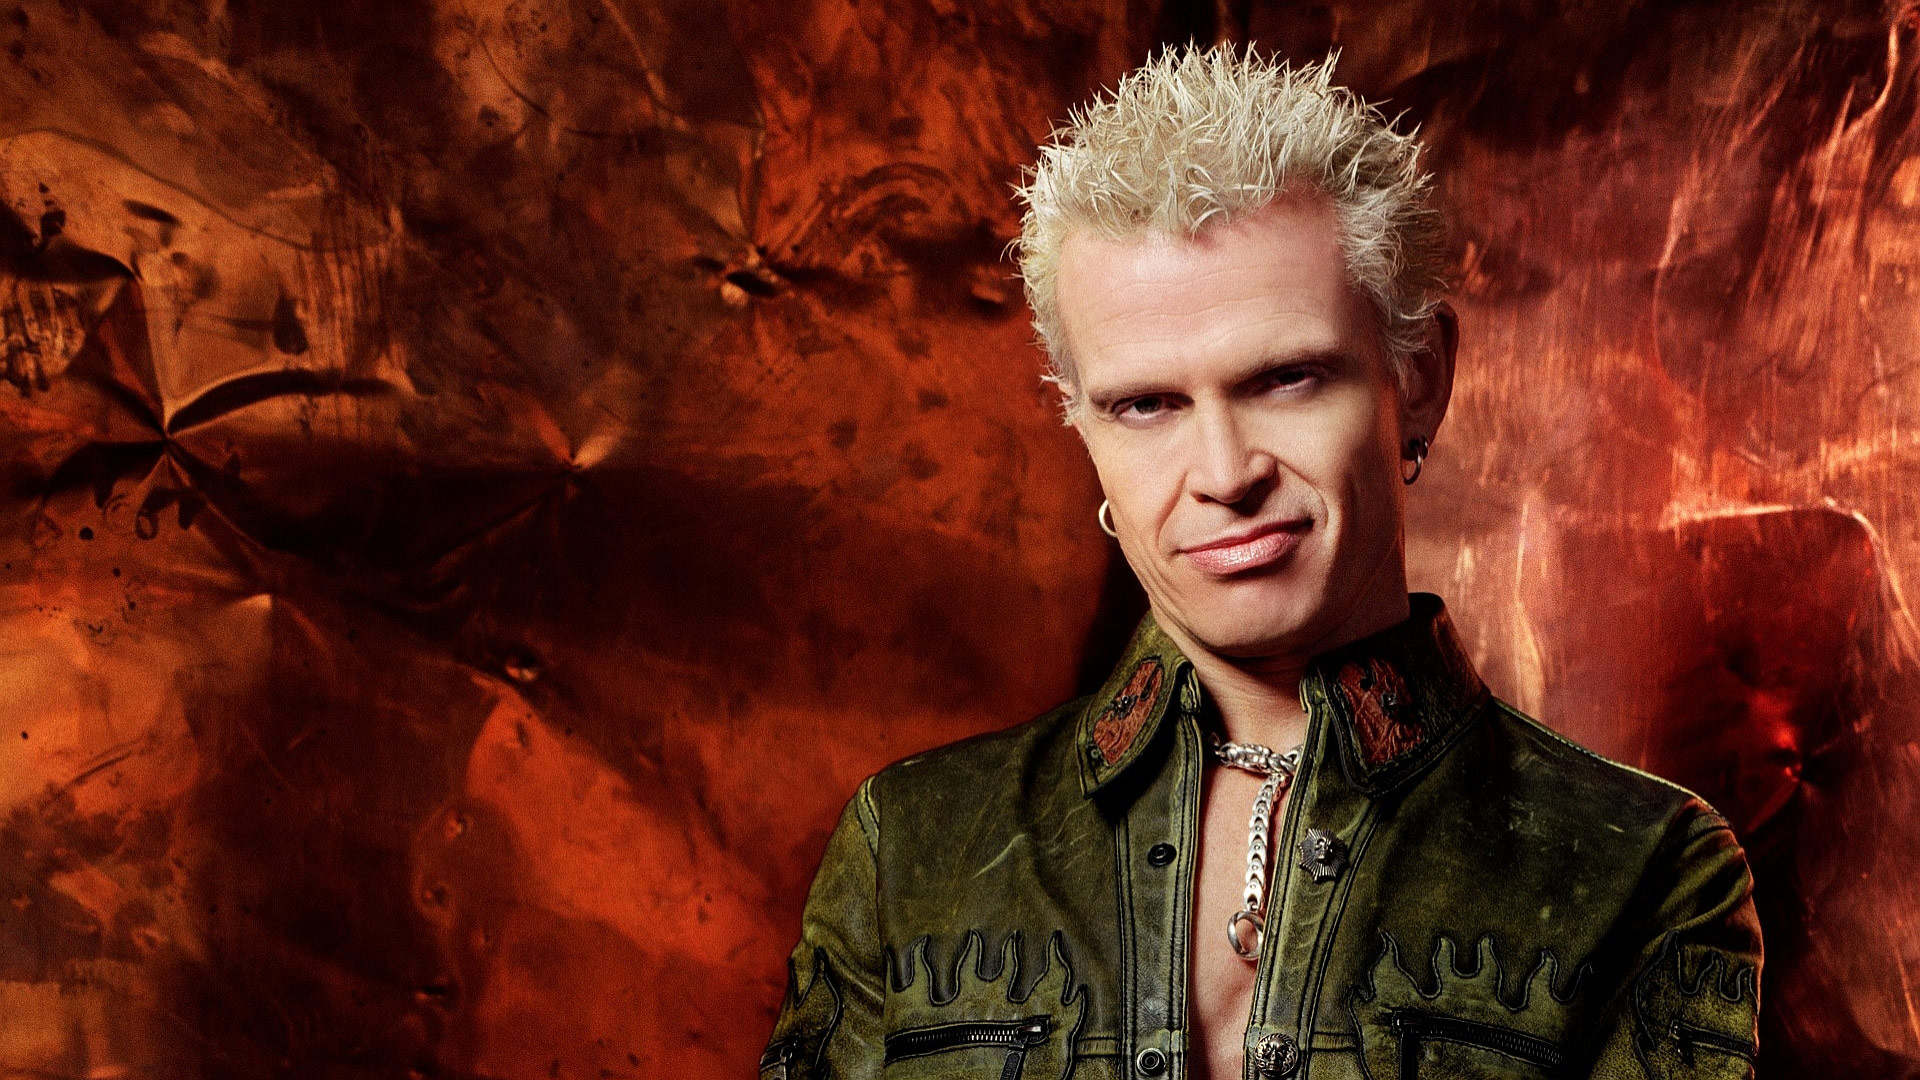 Rebel Yell av Billy Idol